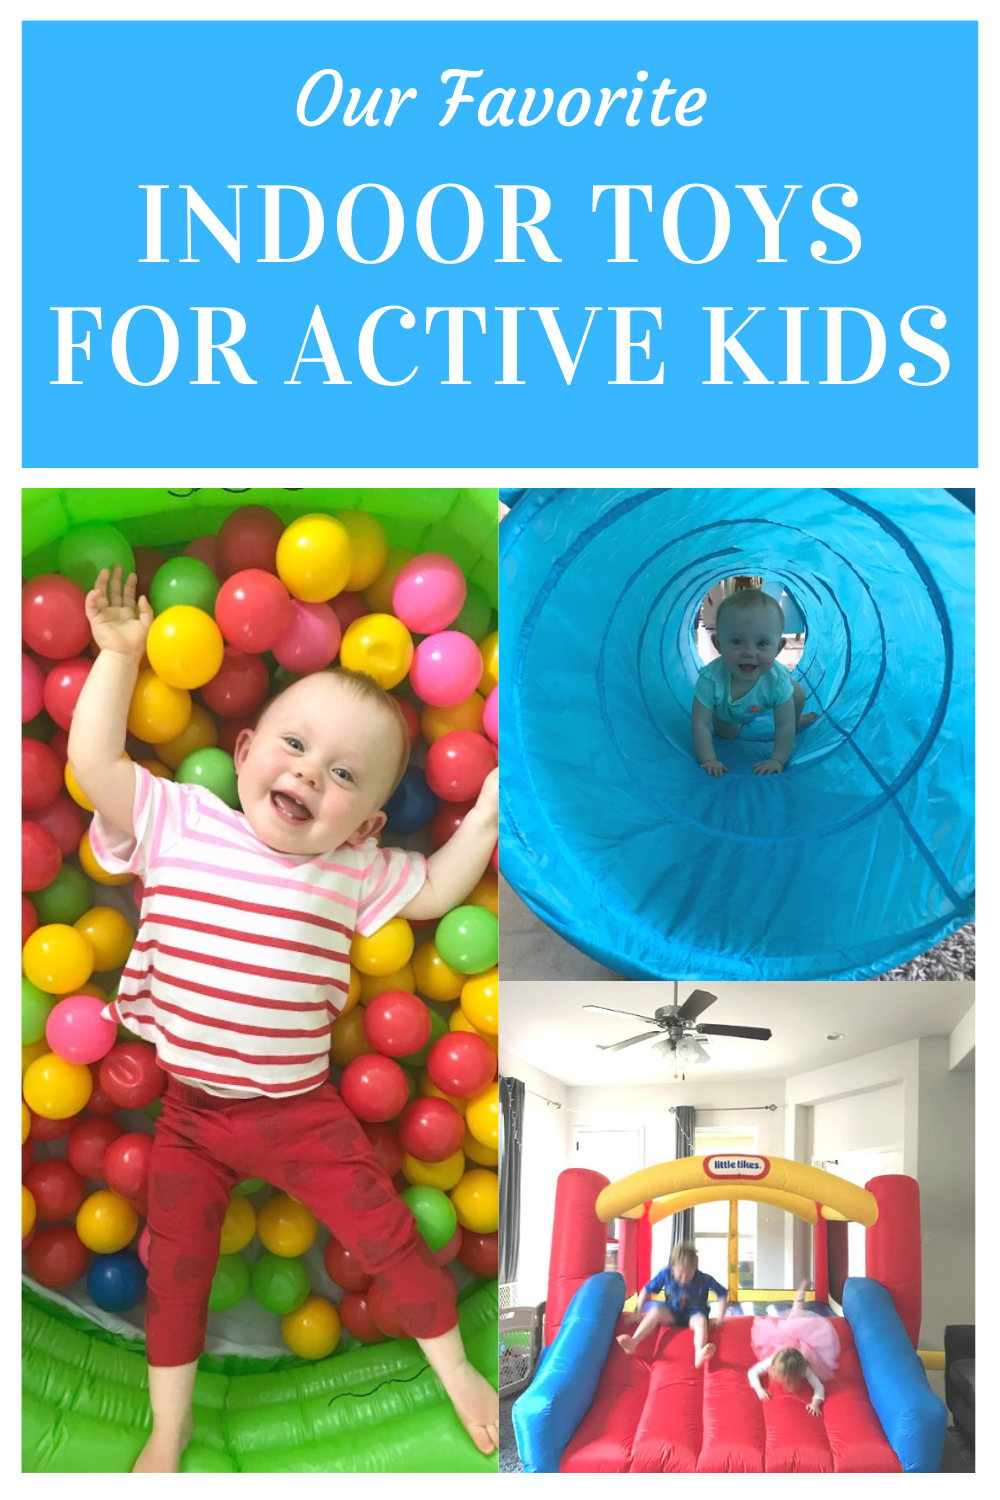 Our Favorite Indoor Toys for Active Kids // Life Anchored